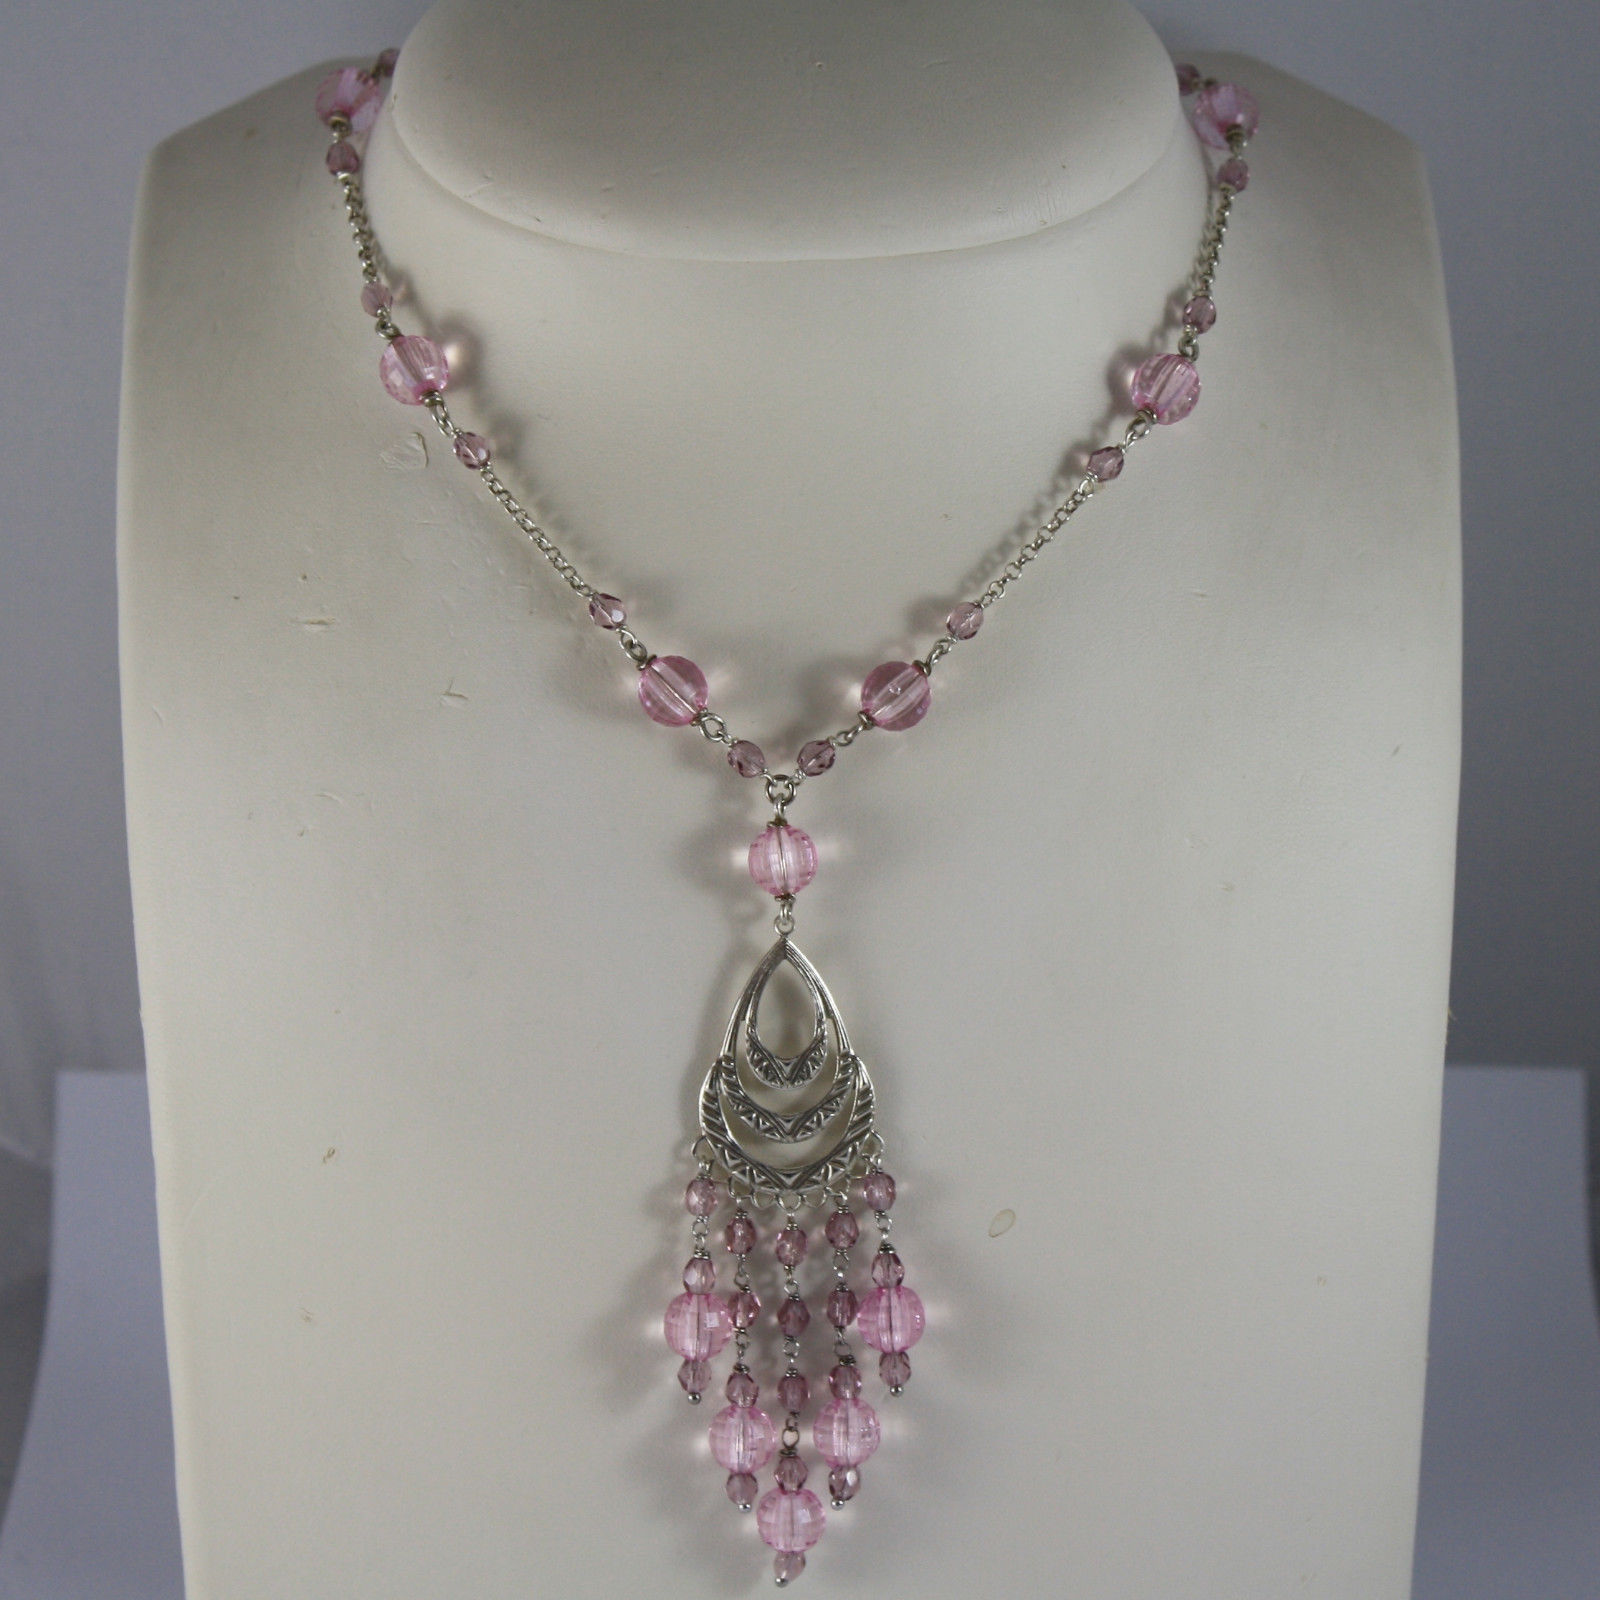 .925 RHODIUM SILVER NECKLACE WITH LILAC AND PINK CRISTAL AND A PERFORATED PLATE